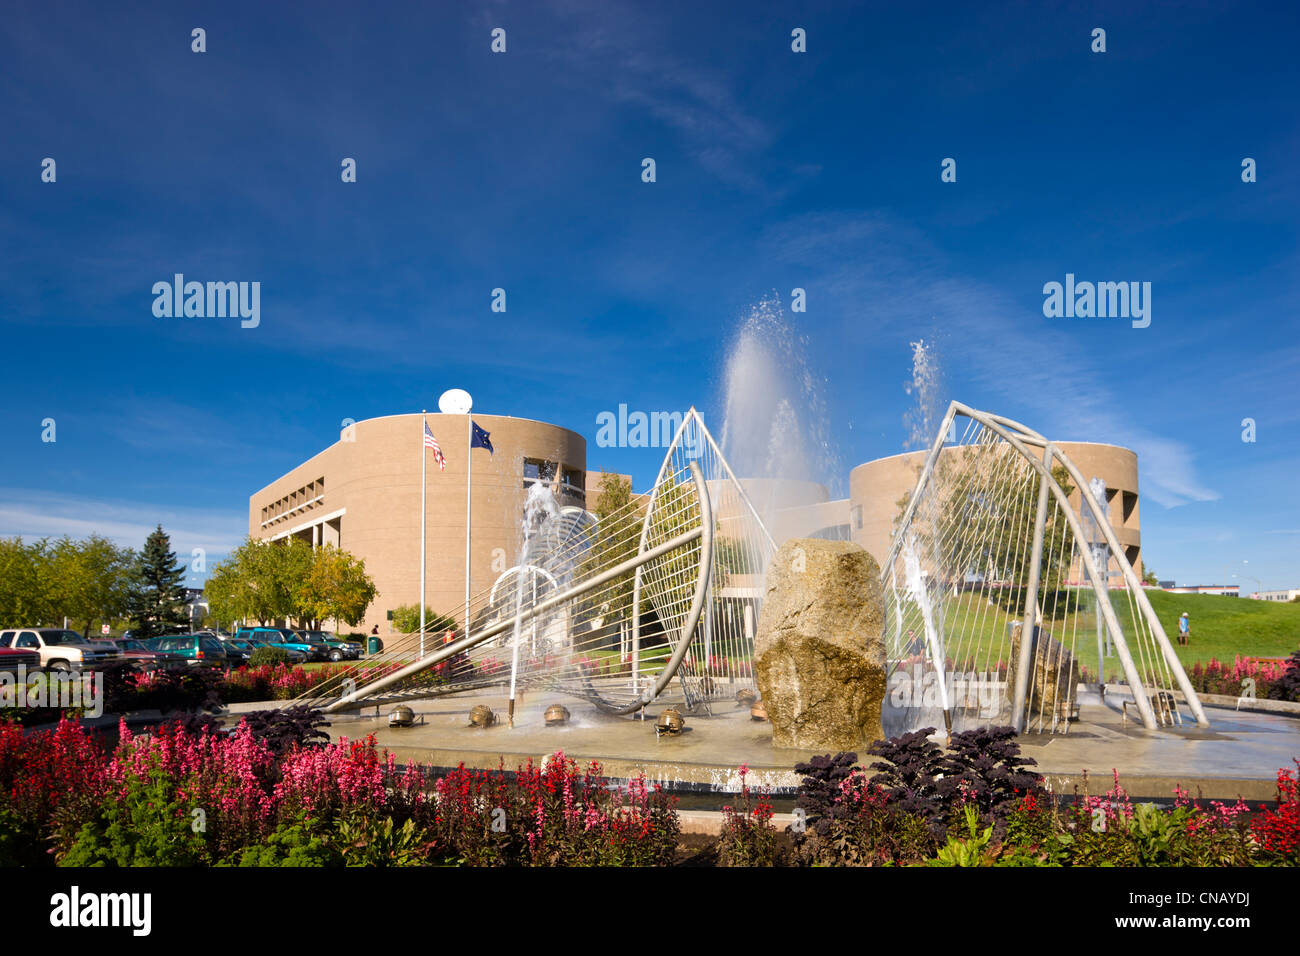 Loussac library and Carl Nesjar ice fountain in Midtown Anchorage, Southcentral Alaska, Anchorage, Summer - Stock Image